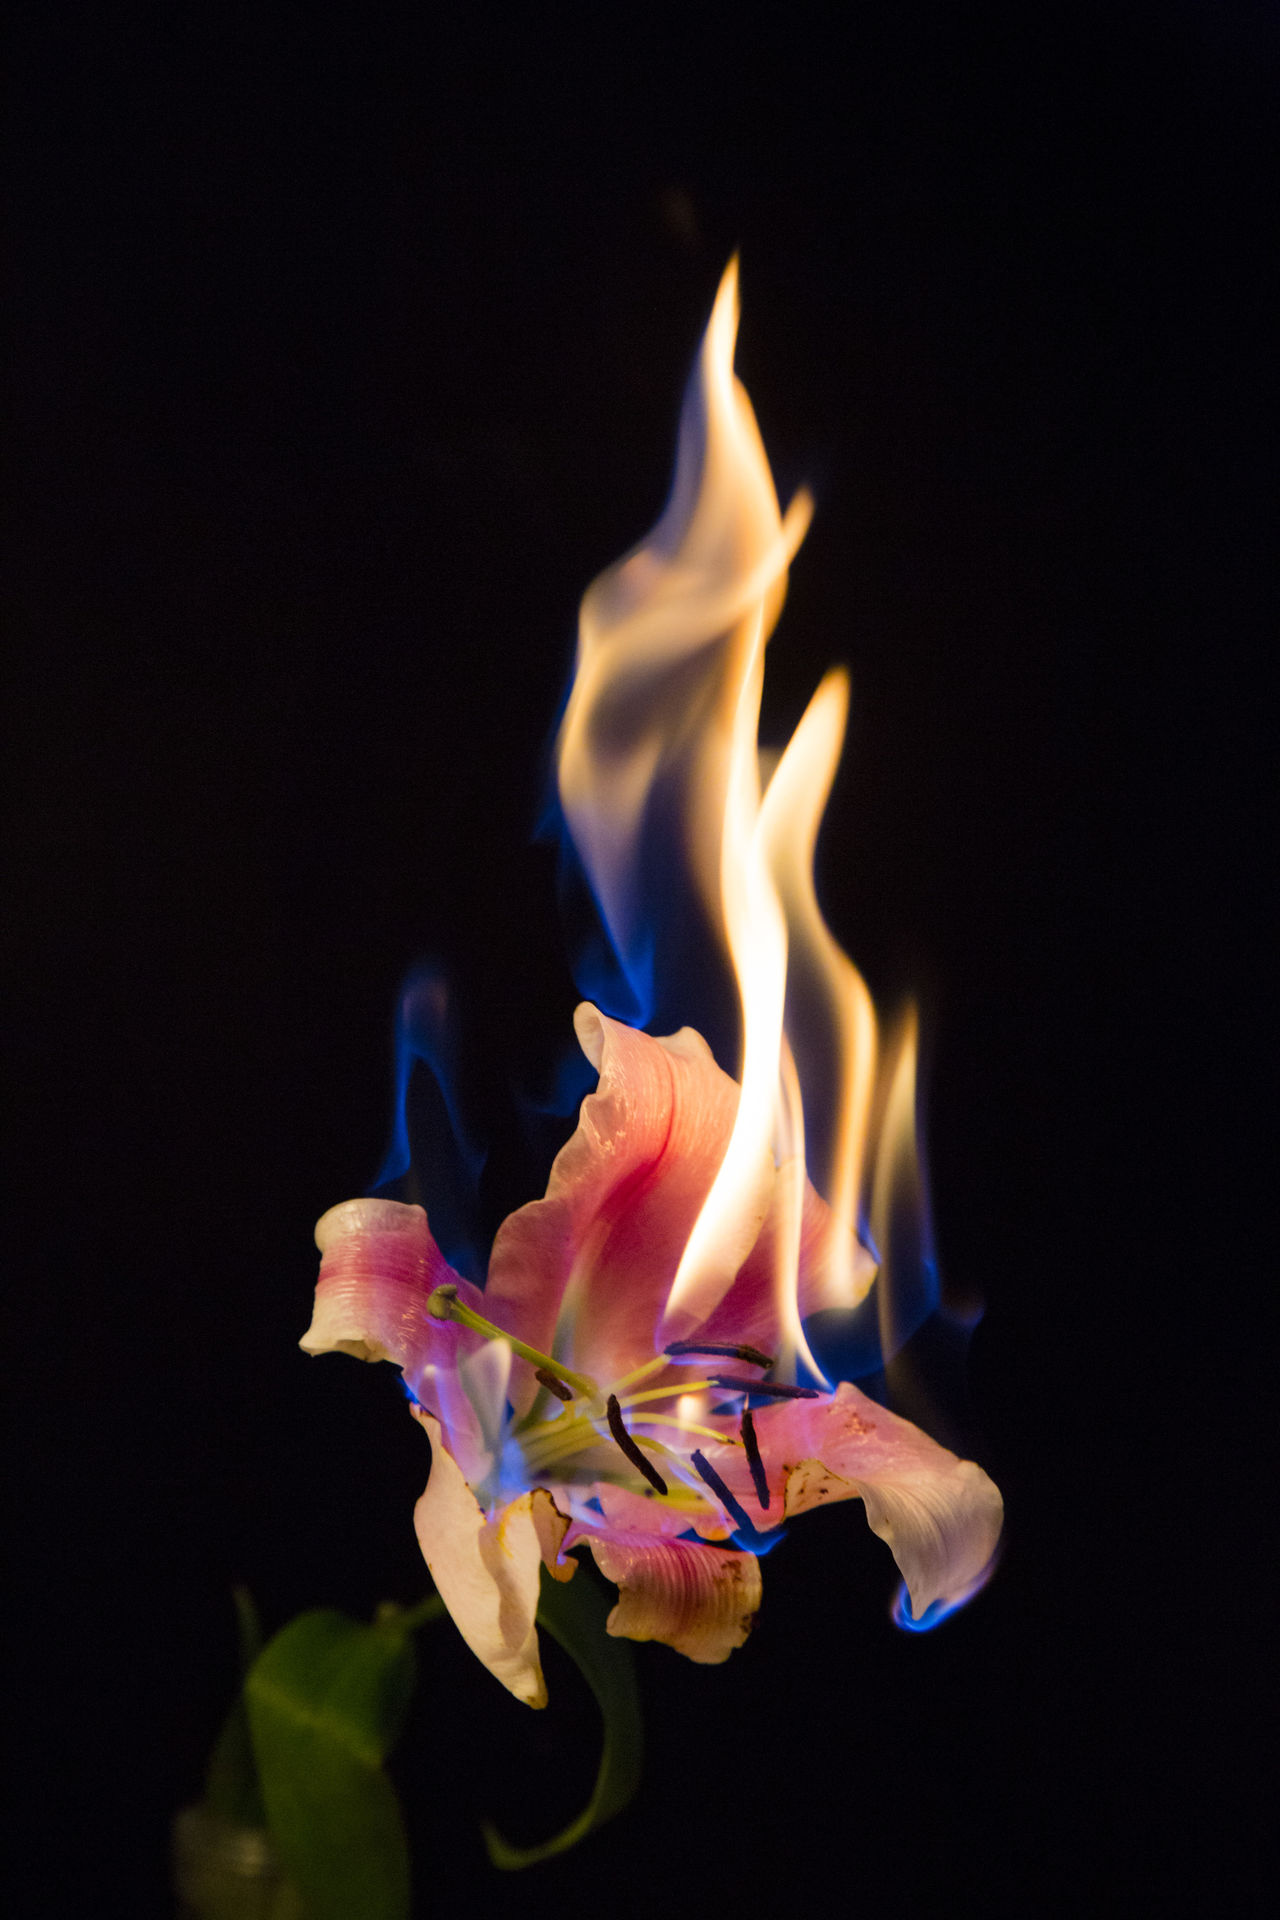 Nature Flower Black Background Fire